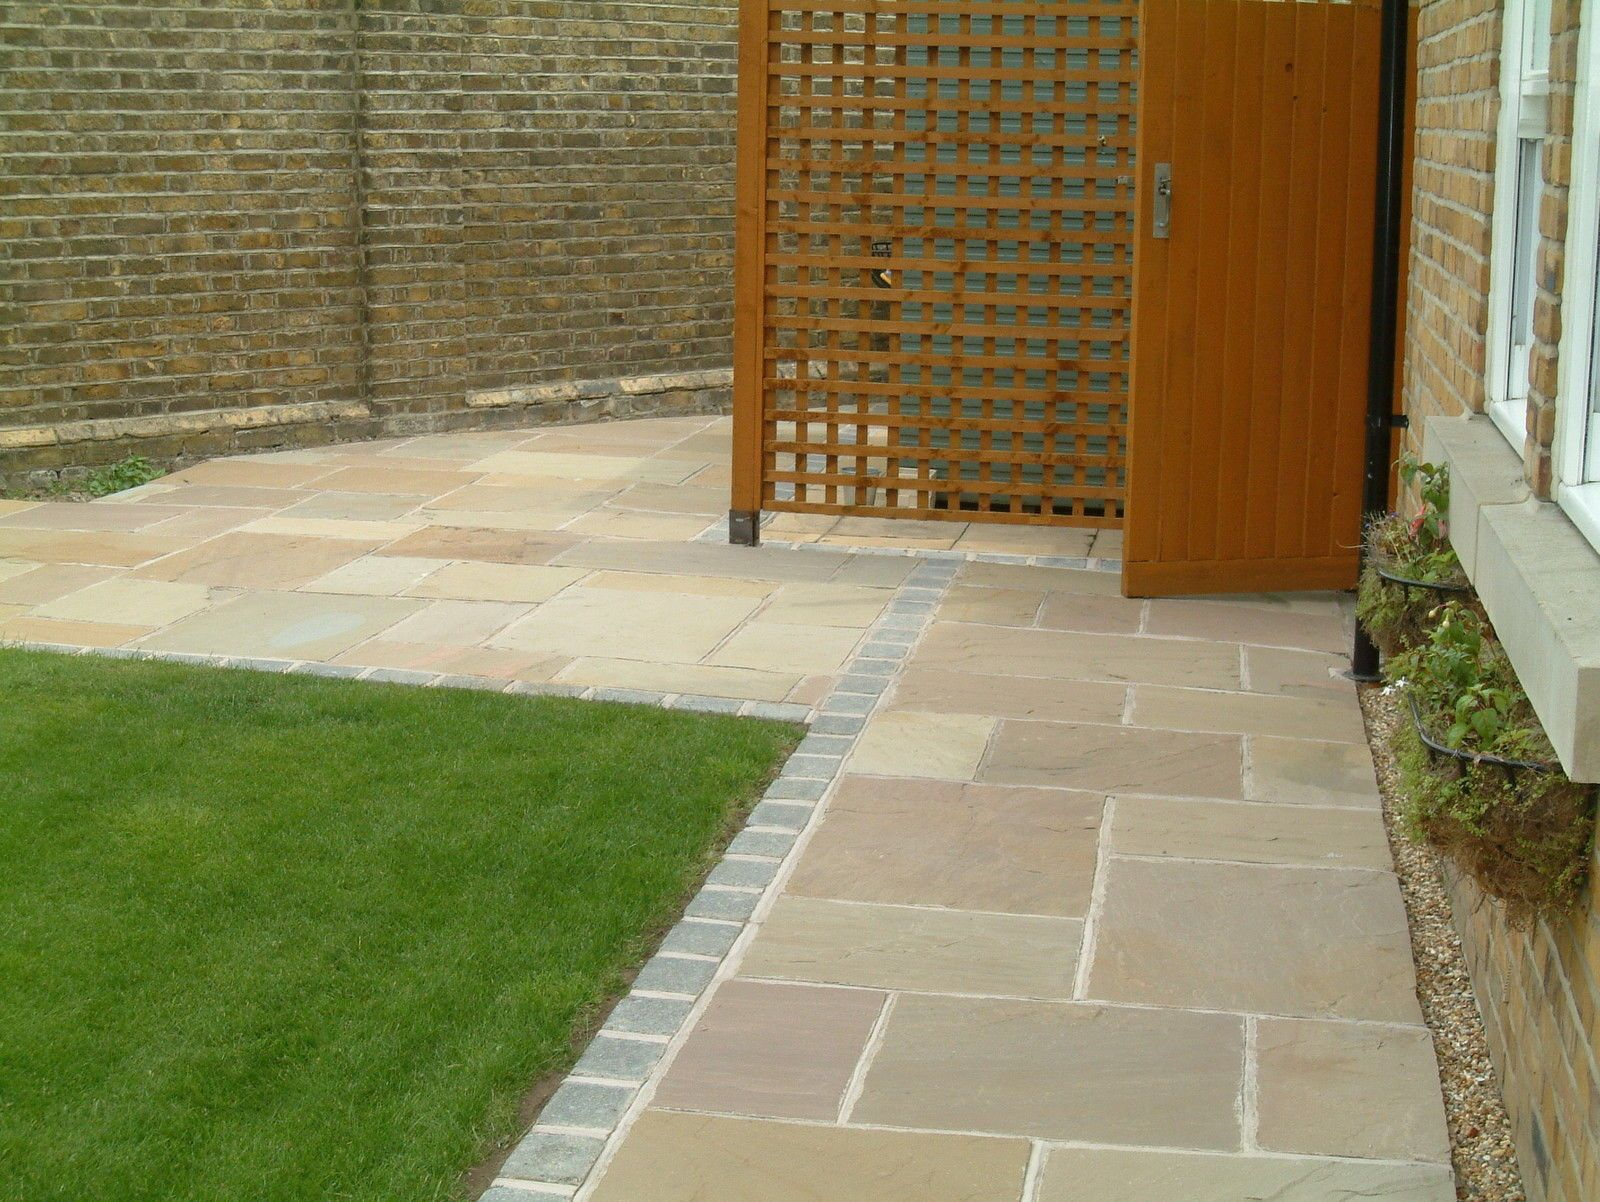 raj green indian sandstone paving natural stone patio. Black Bedroom Furniture Sets. Home Design Ideas